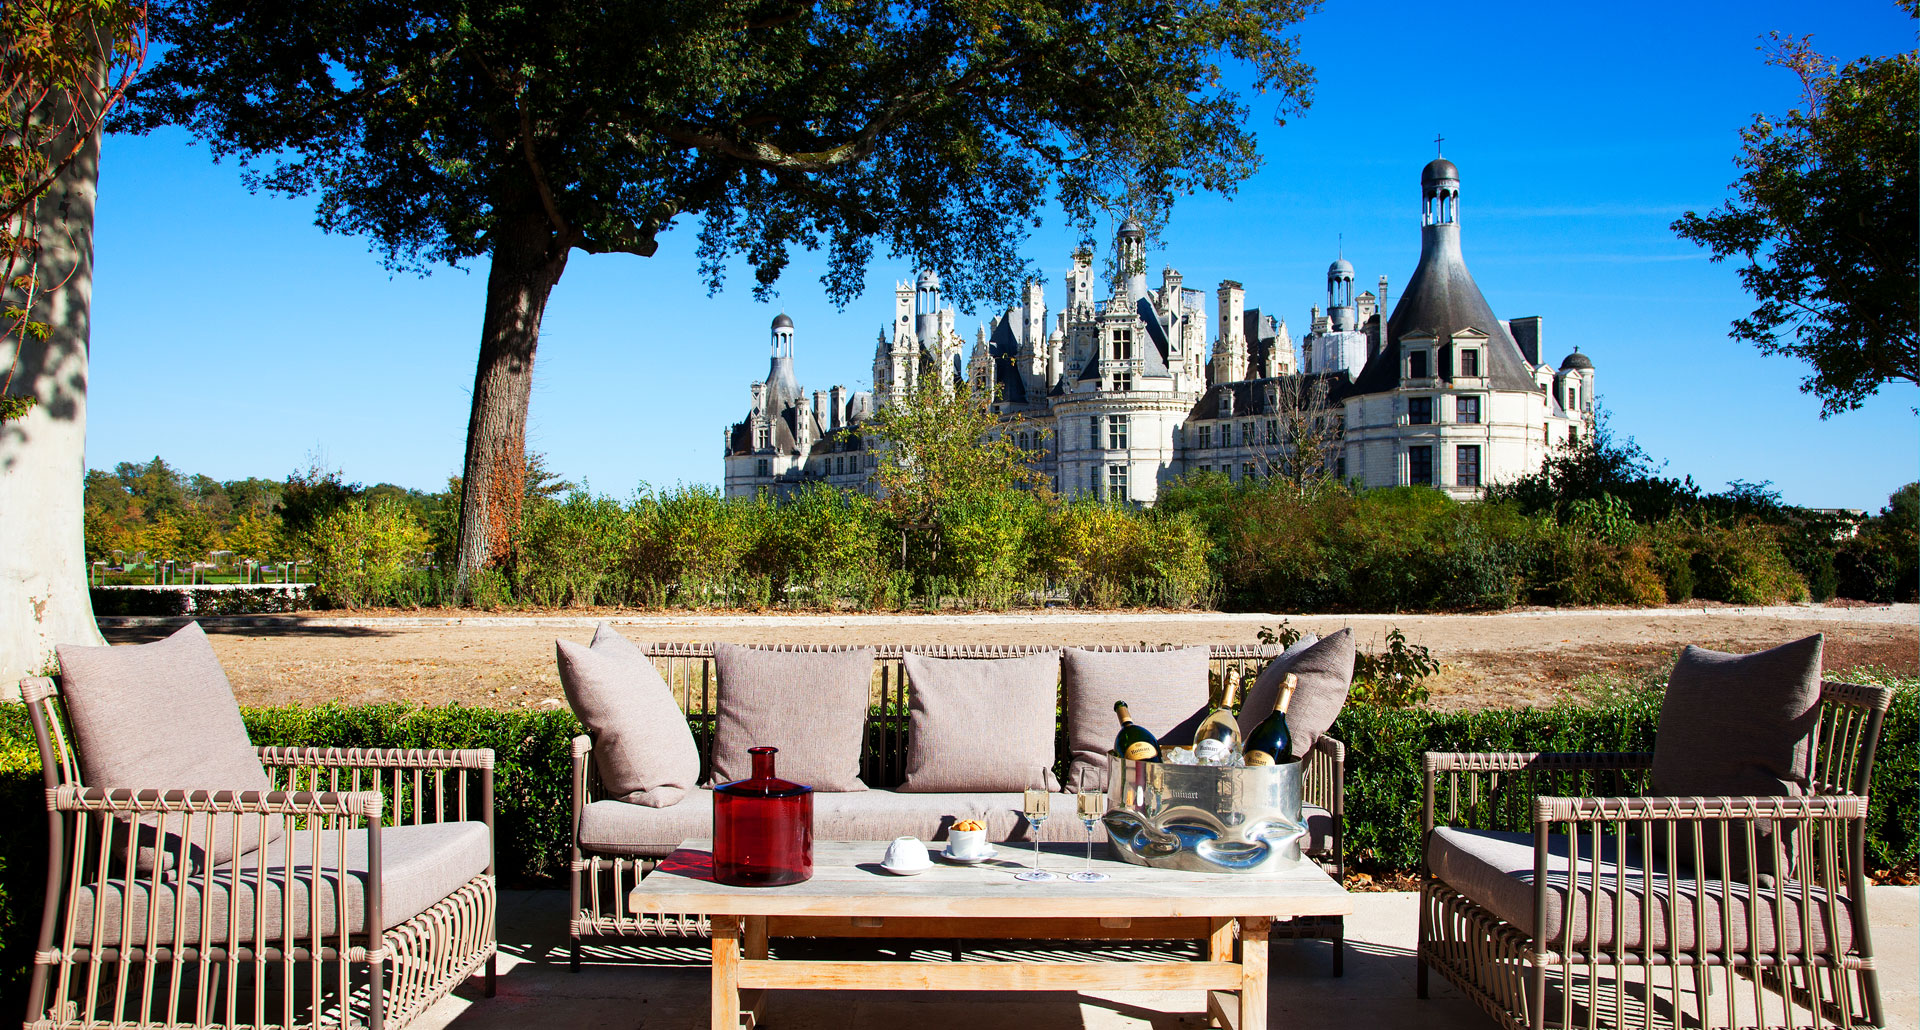 The Mad King and the Castle Hotels — The Agenda by Tablet Hotels